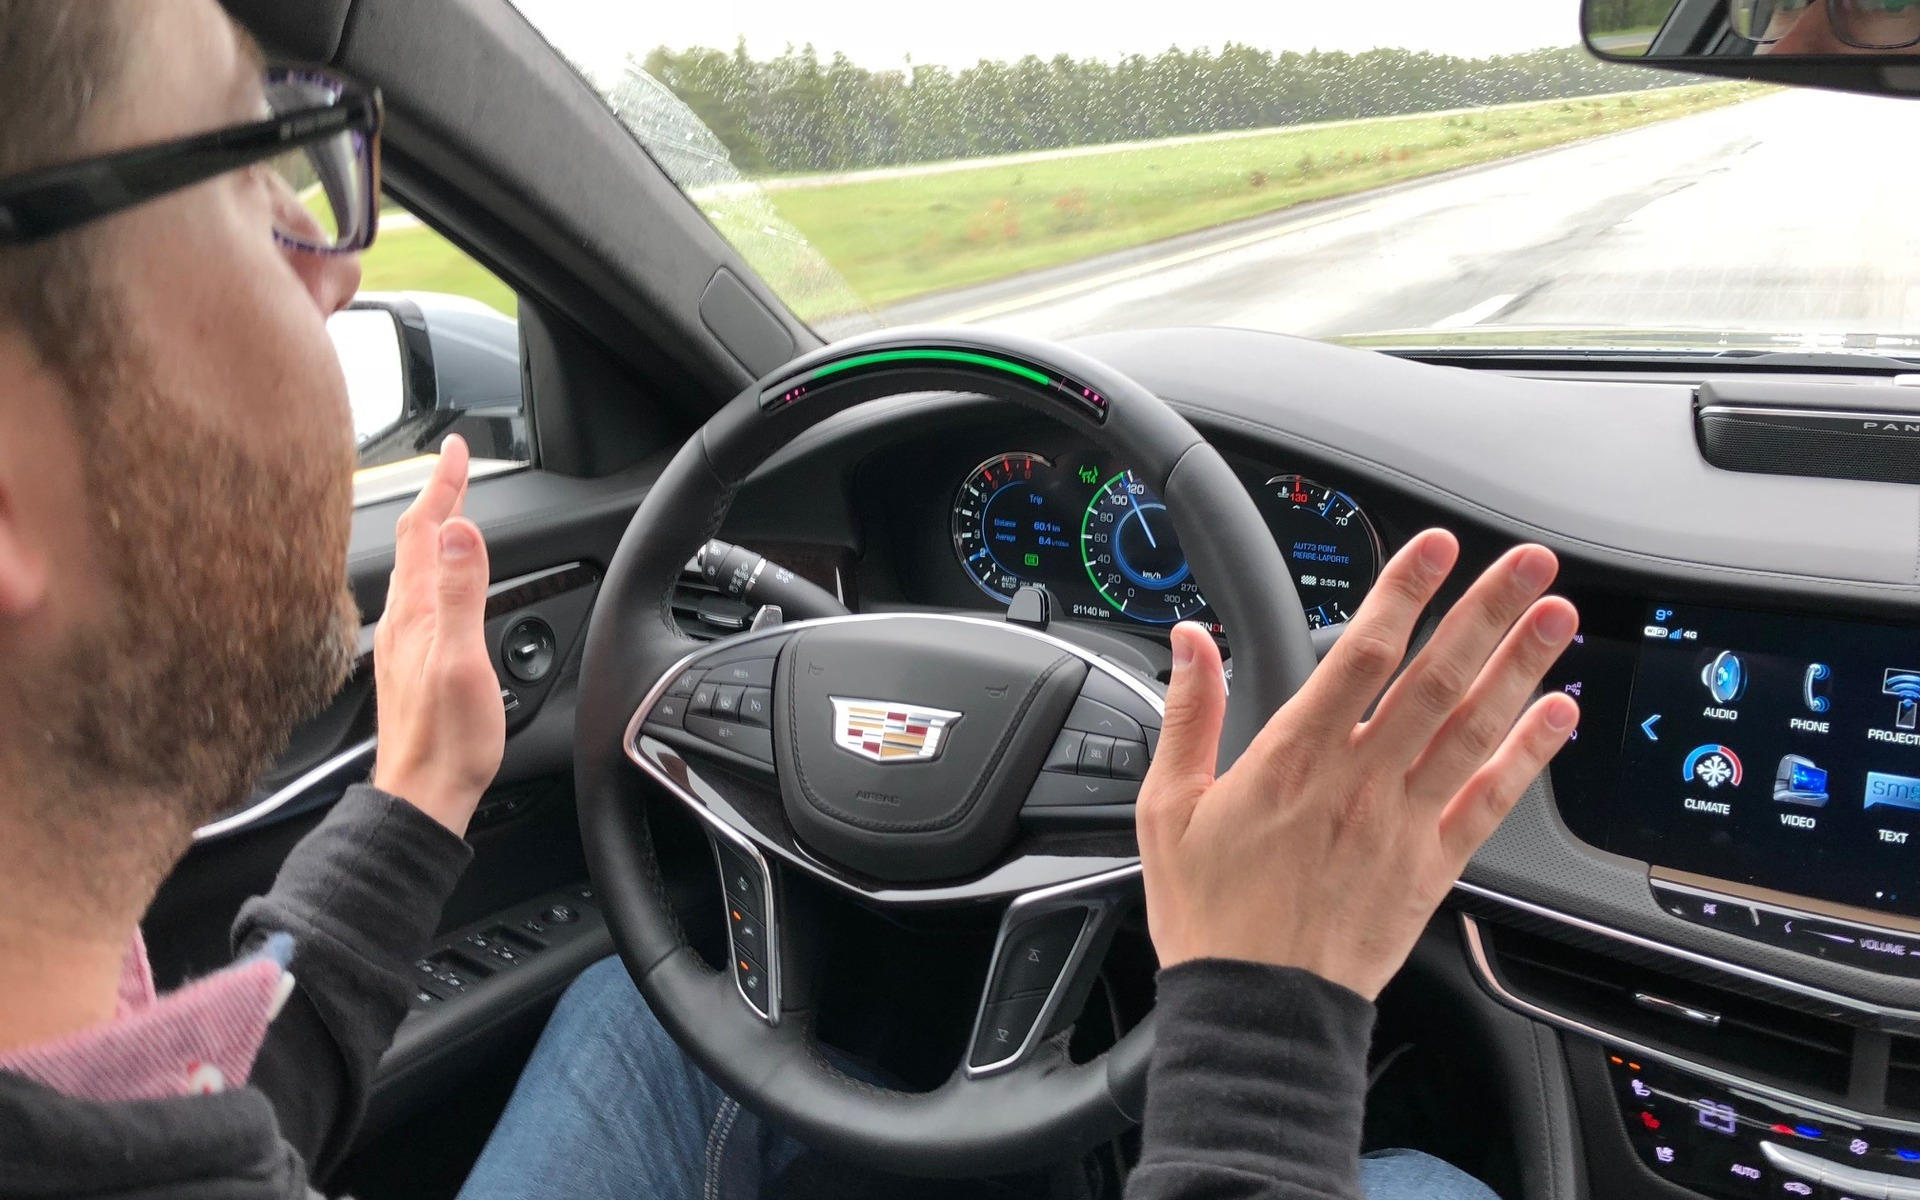 La technologie Super Cruise de Cadillac dans la berline CT6.